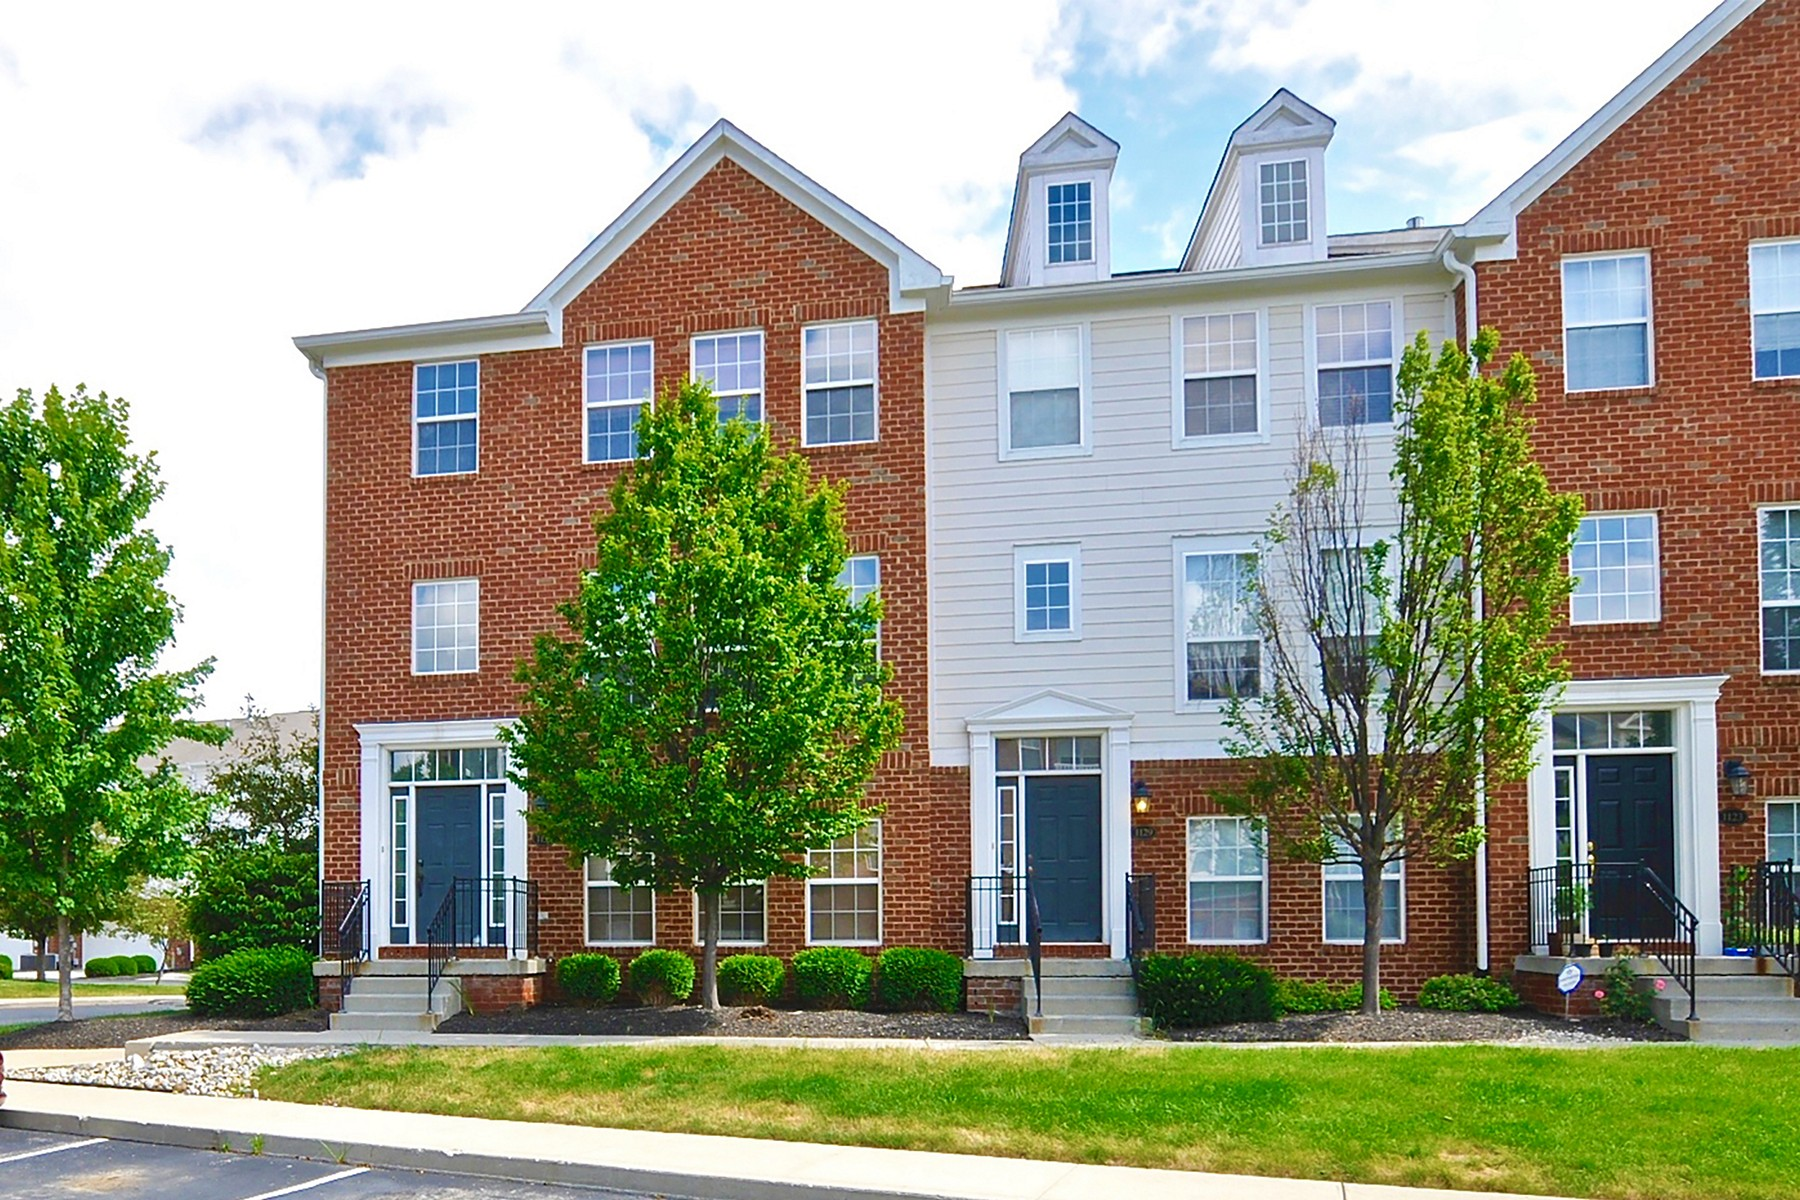 Casa unifamiliar adosada (Townhouse) por un Alquiler en Immaculate End Unit Townhome in Carmel 1135 Cavendish Drive Carmel, Indiana 46032 Estados Unidos